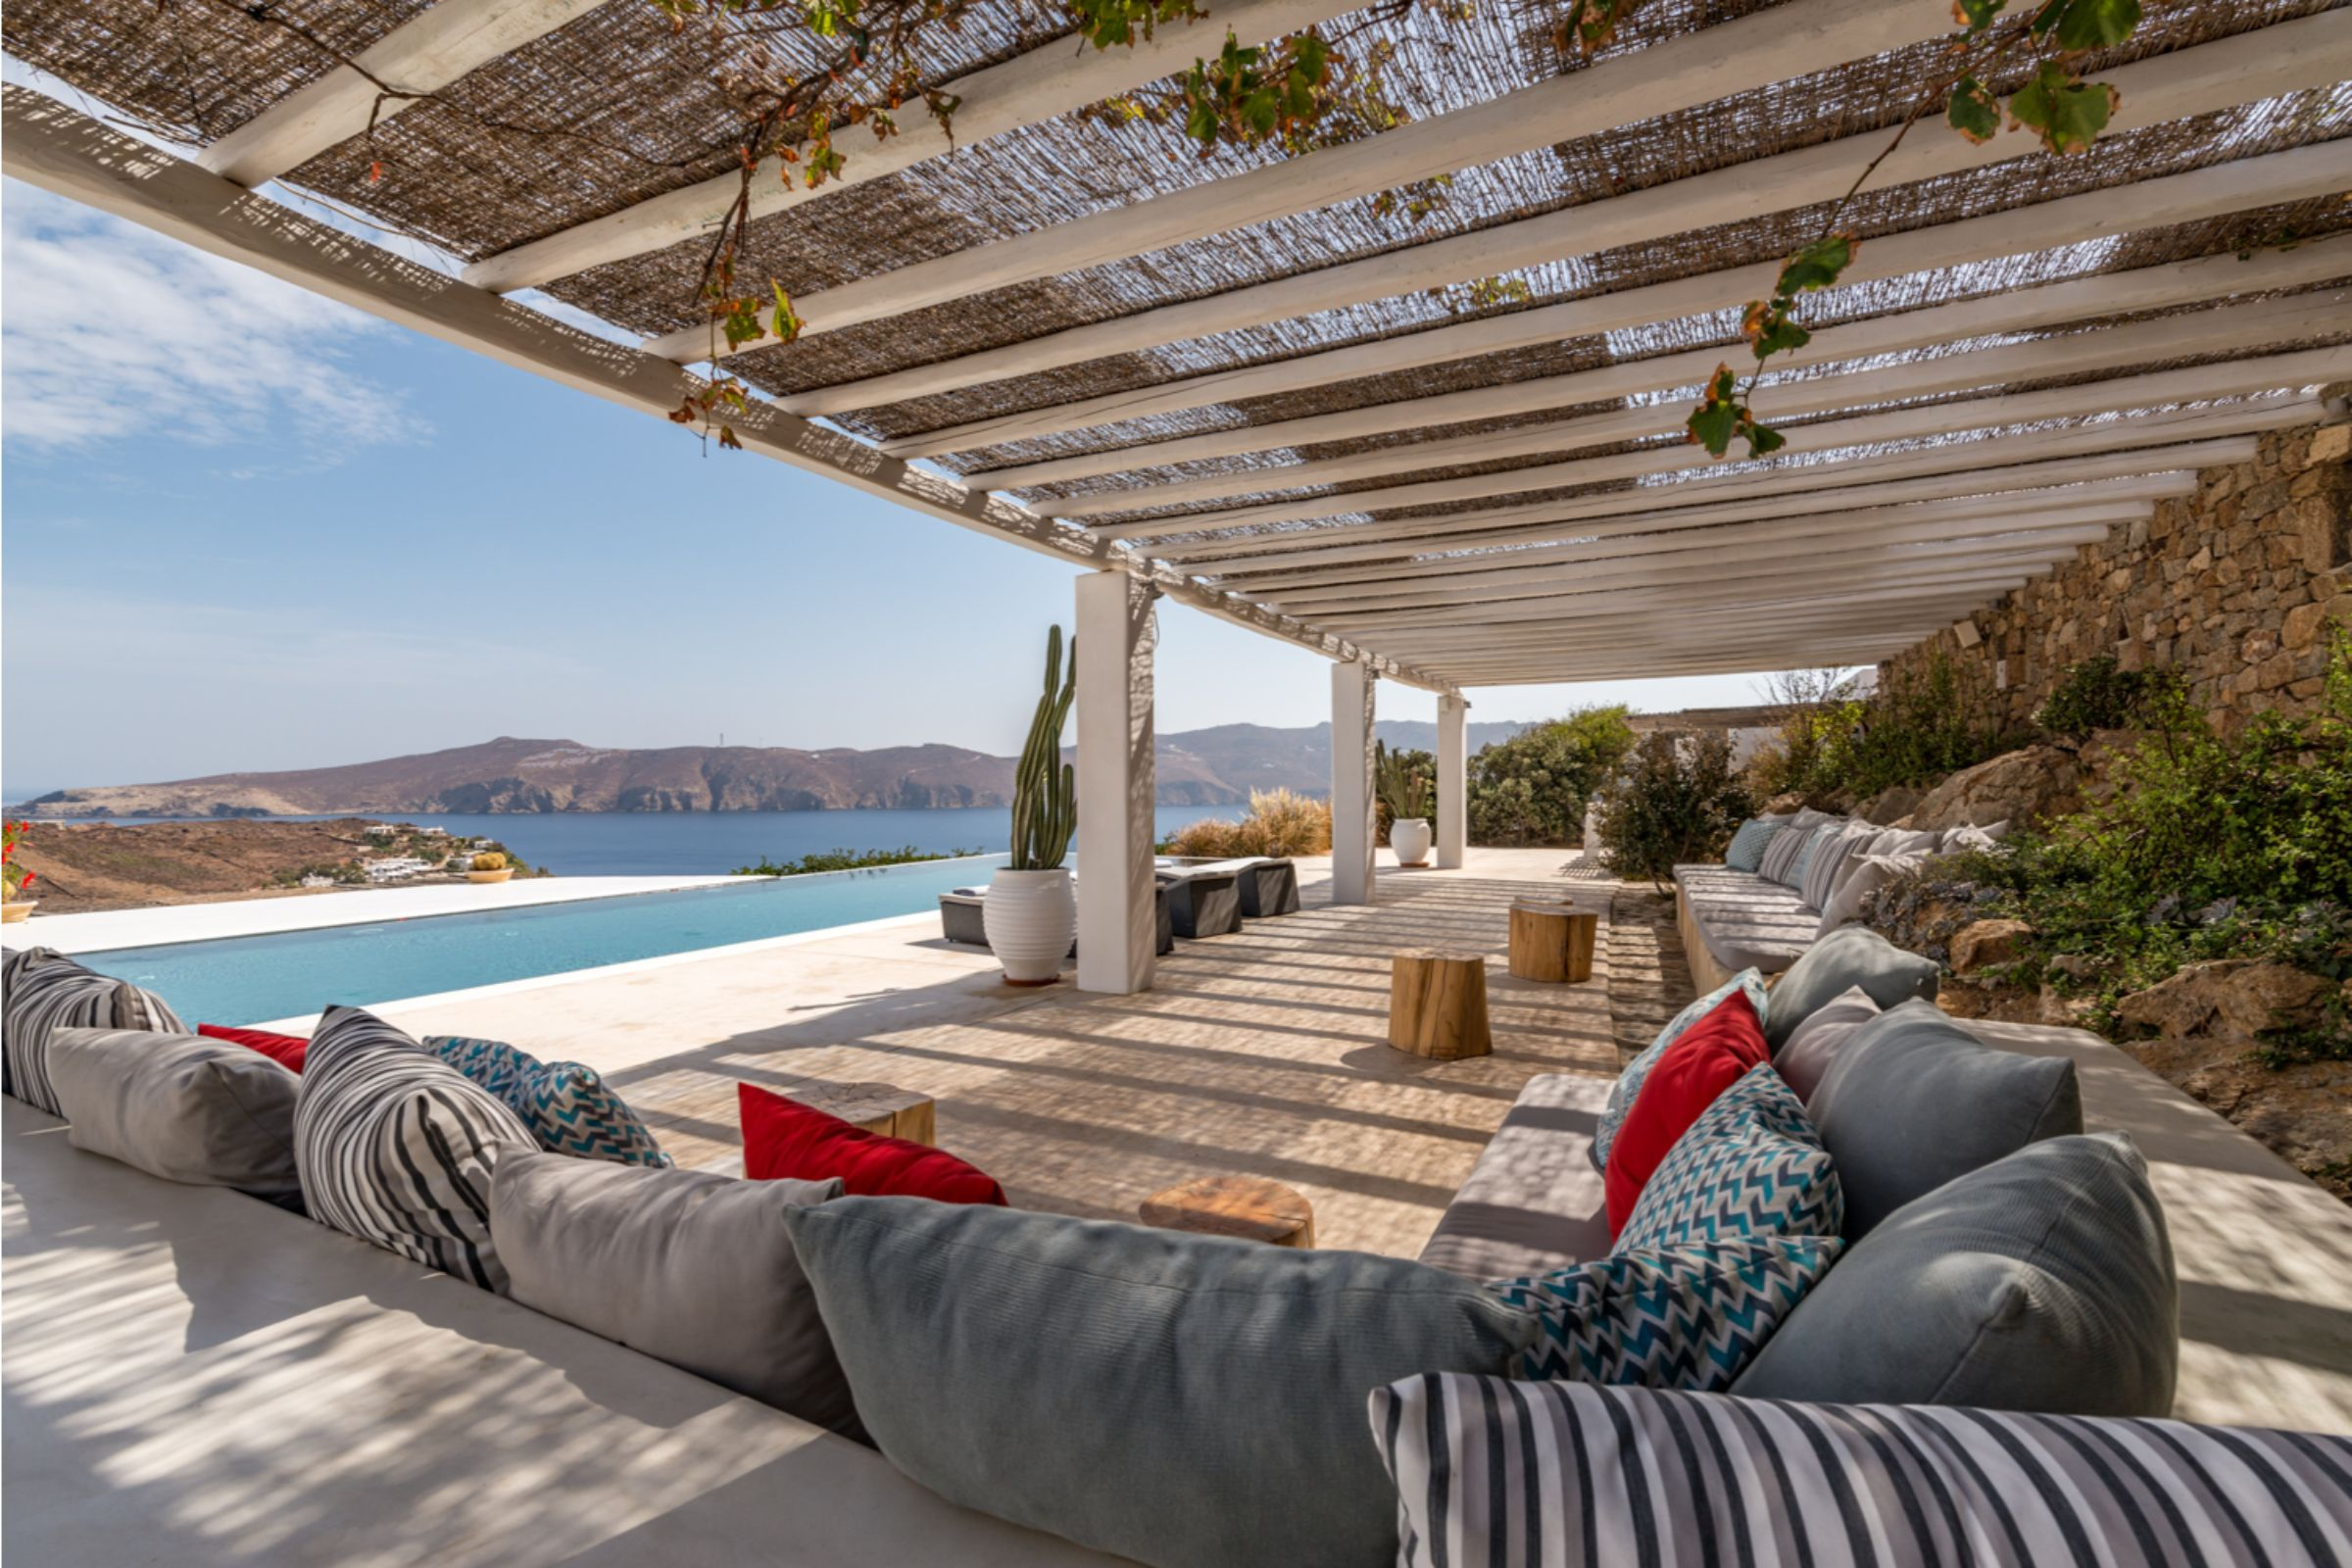 villa alva panormos bay views